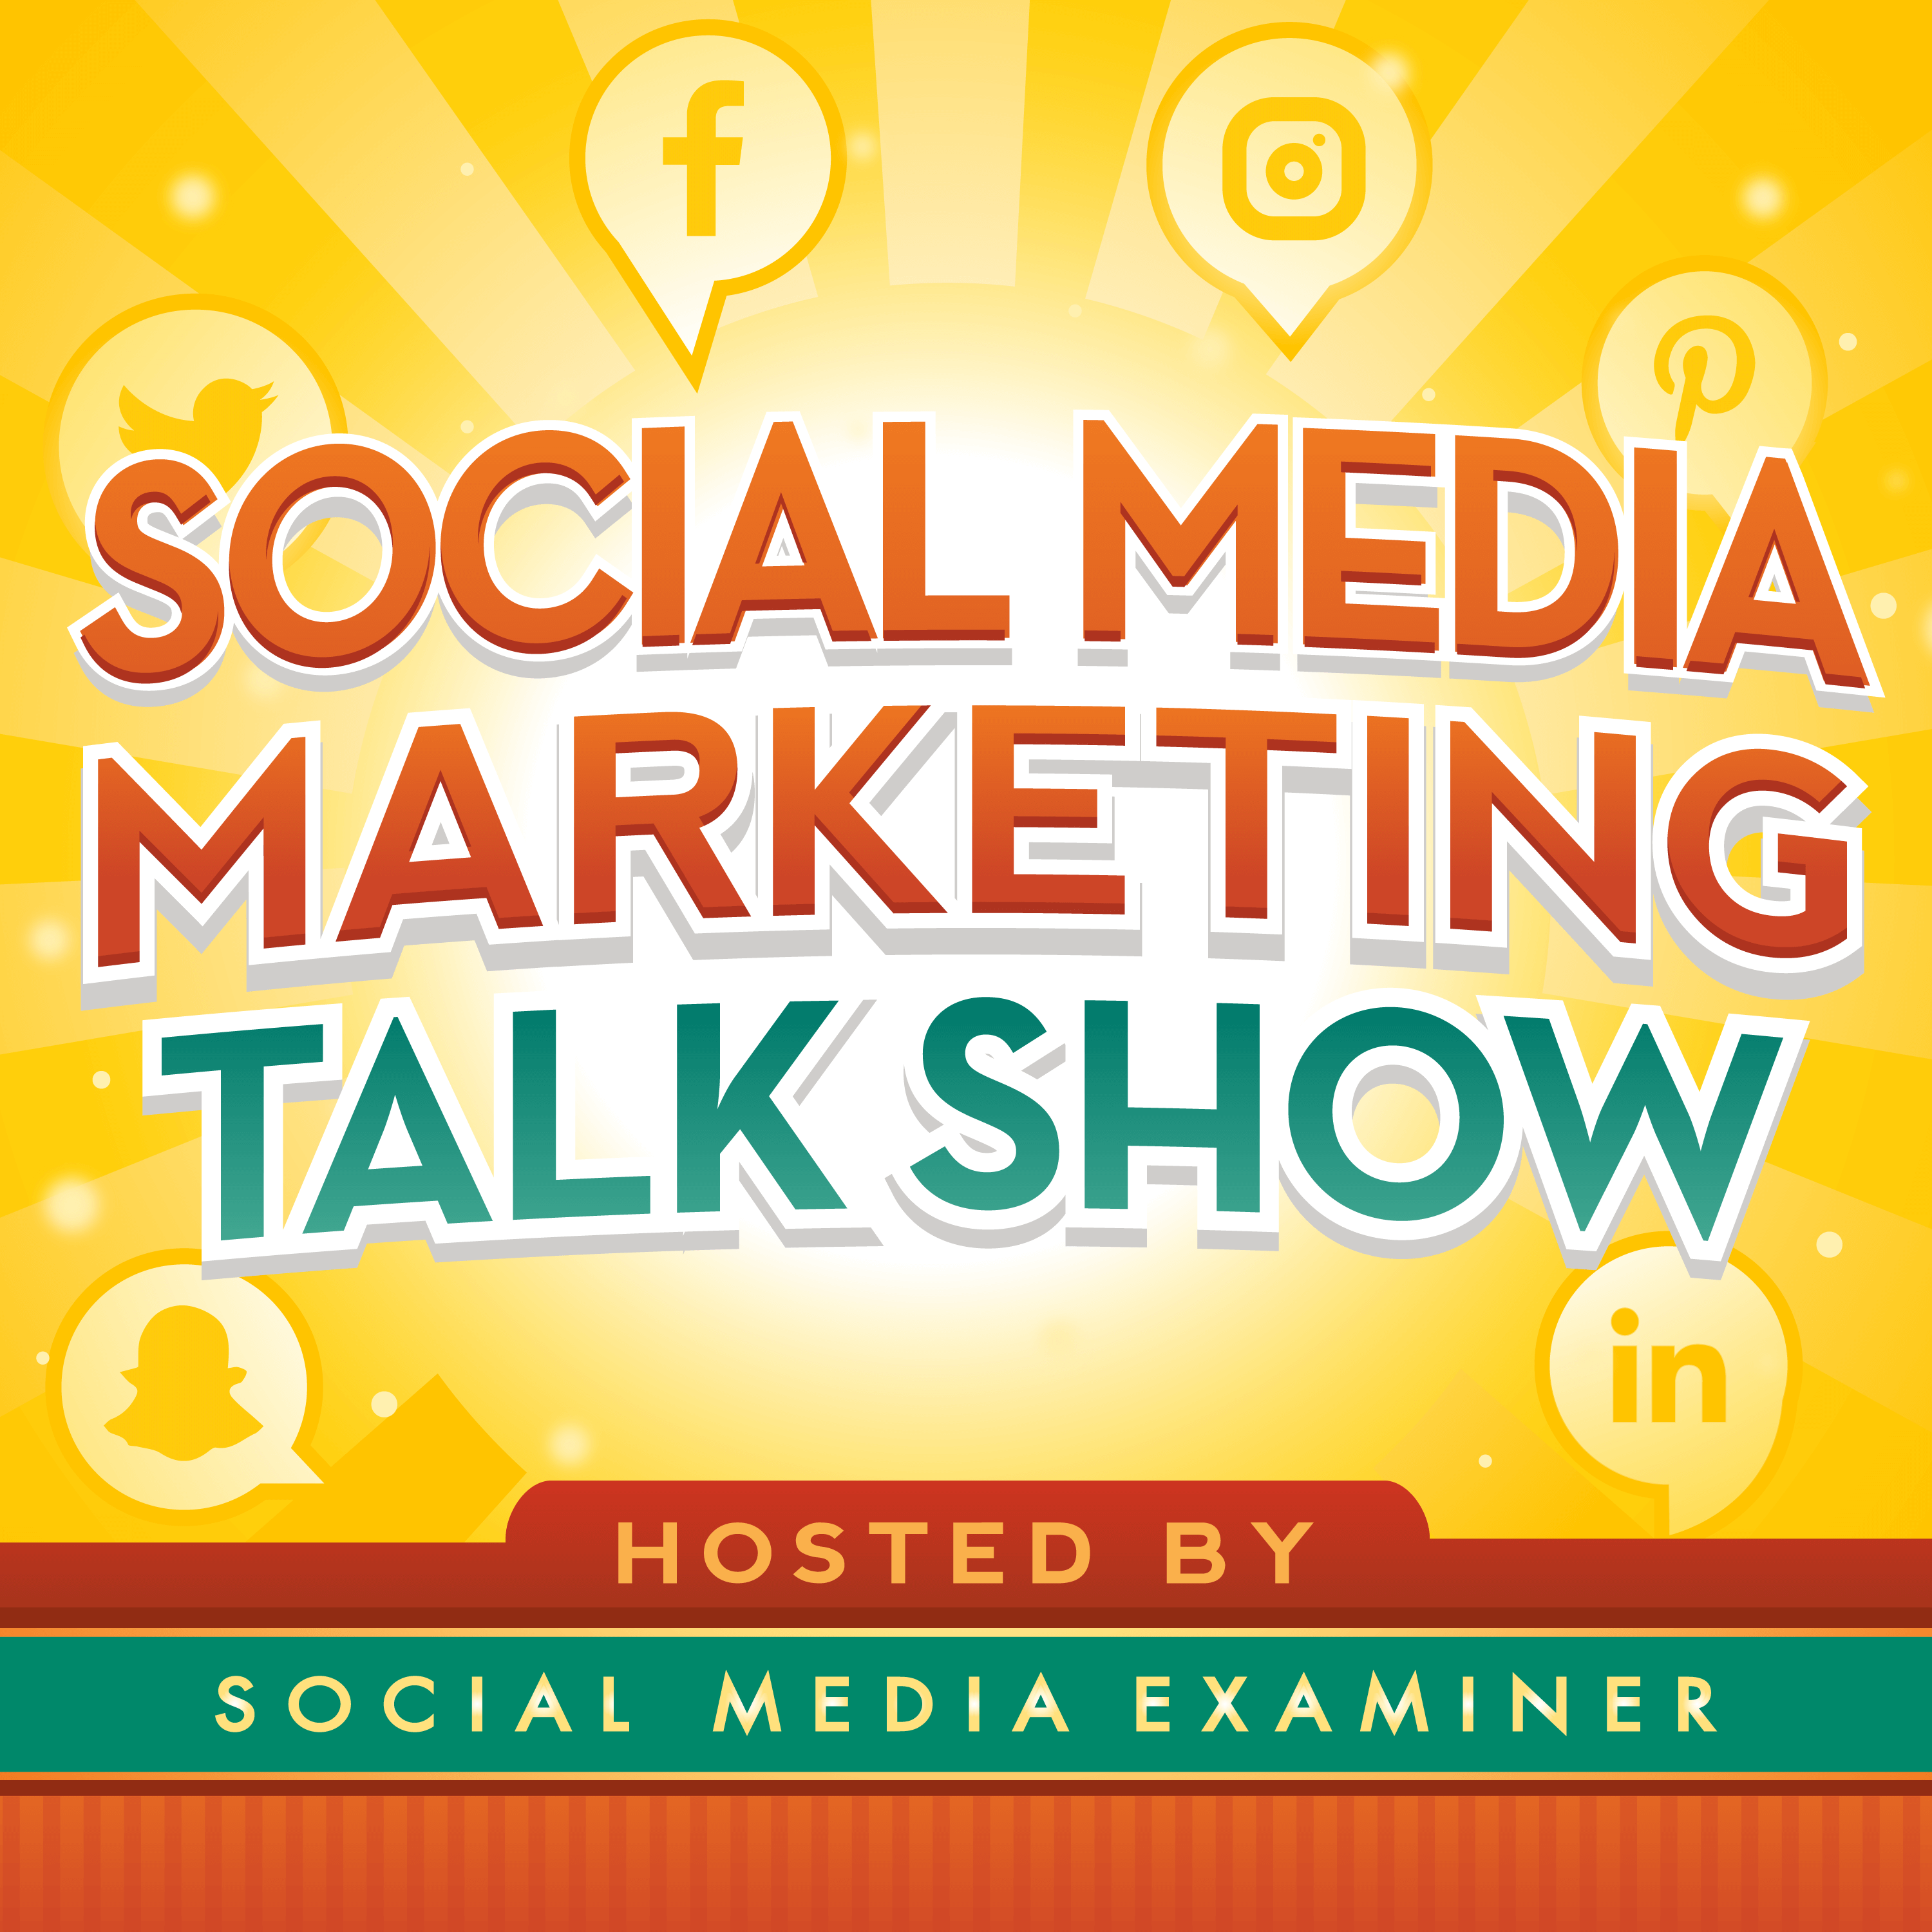 Social Media Marketing Talk Show helps you keep up to date on social media